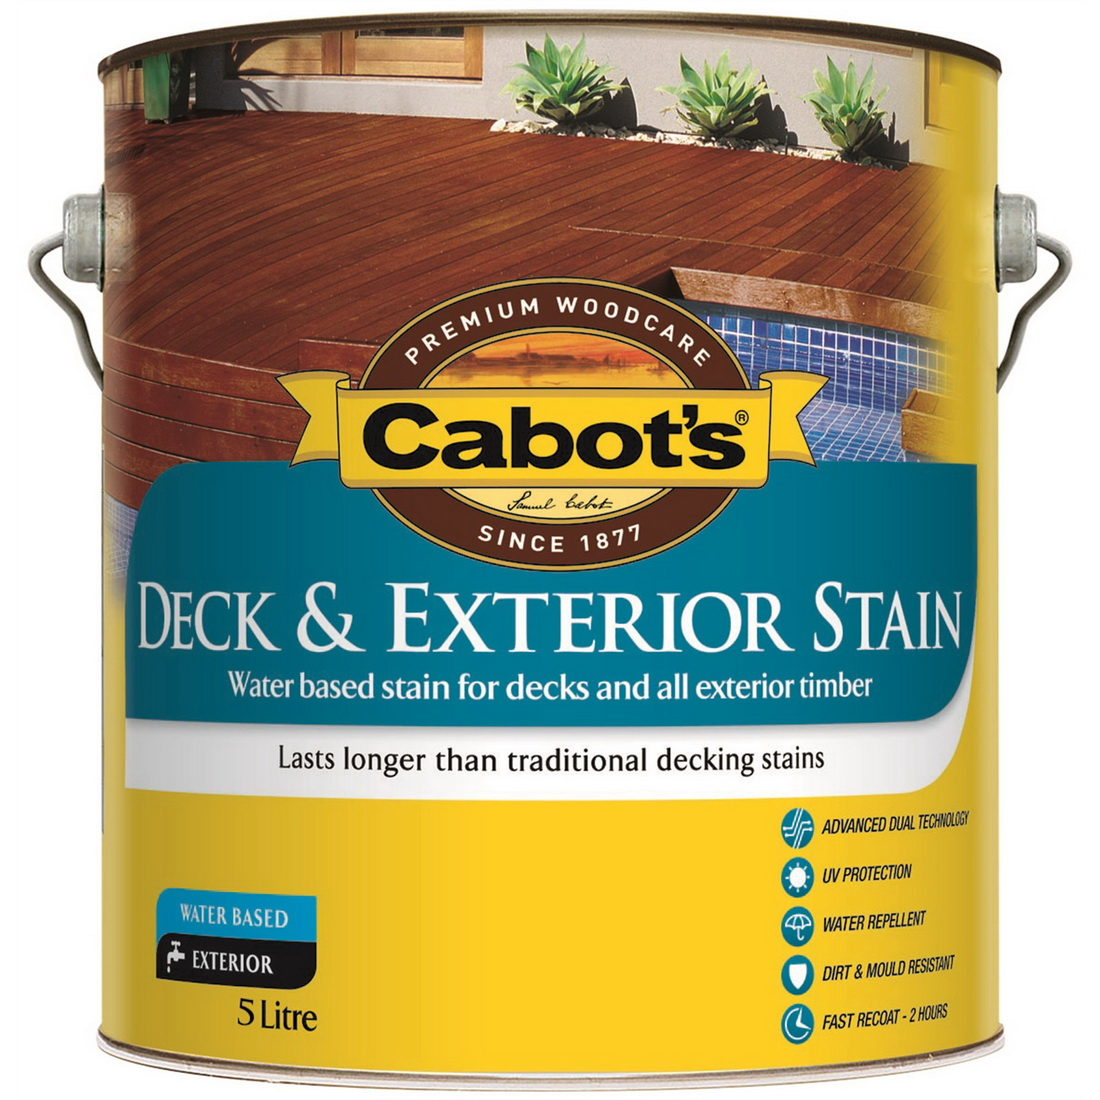 Deck & Exterior Stain Water Based Silver Beech 5L 592W0141-5L